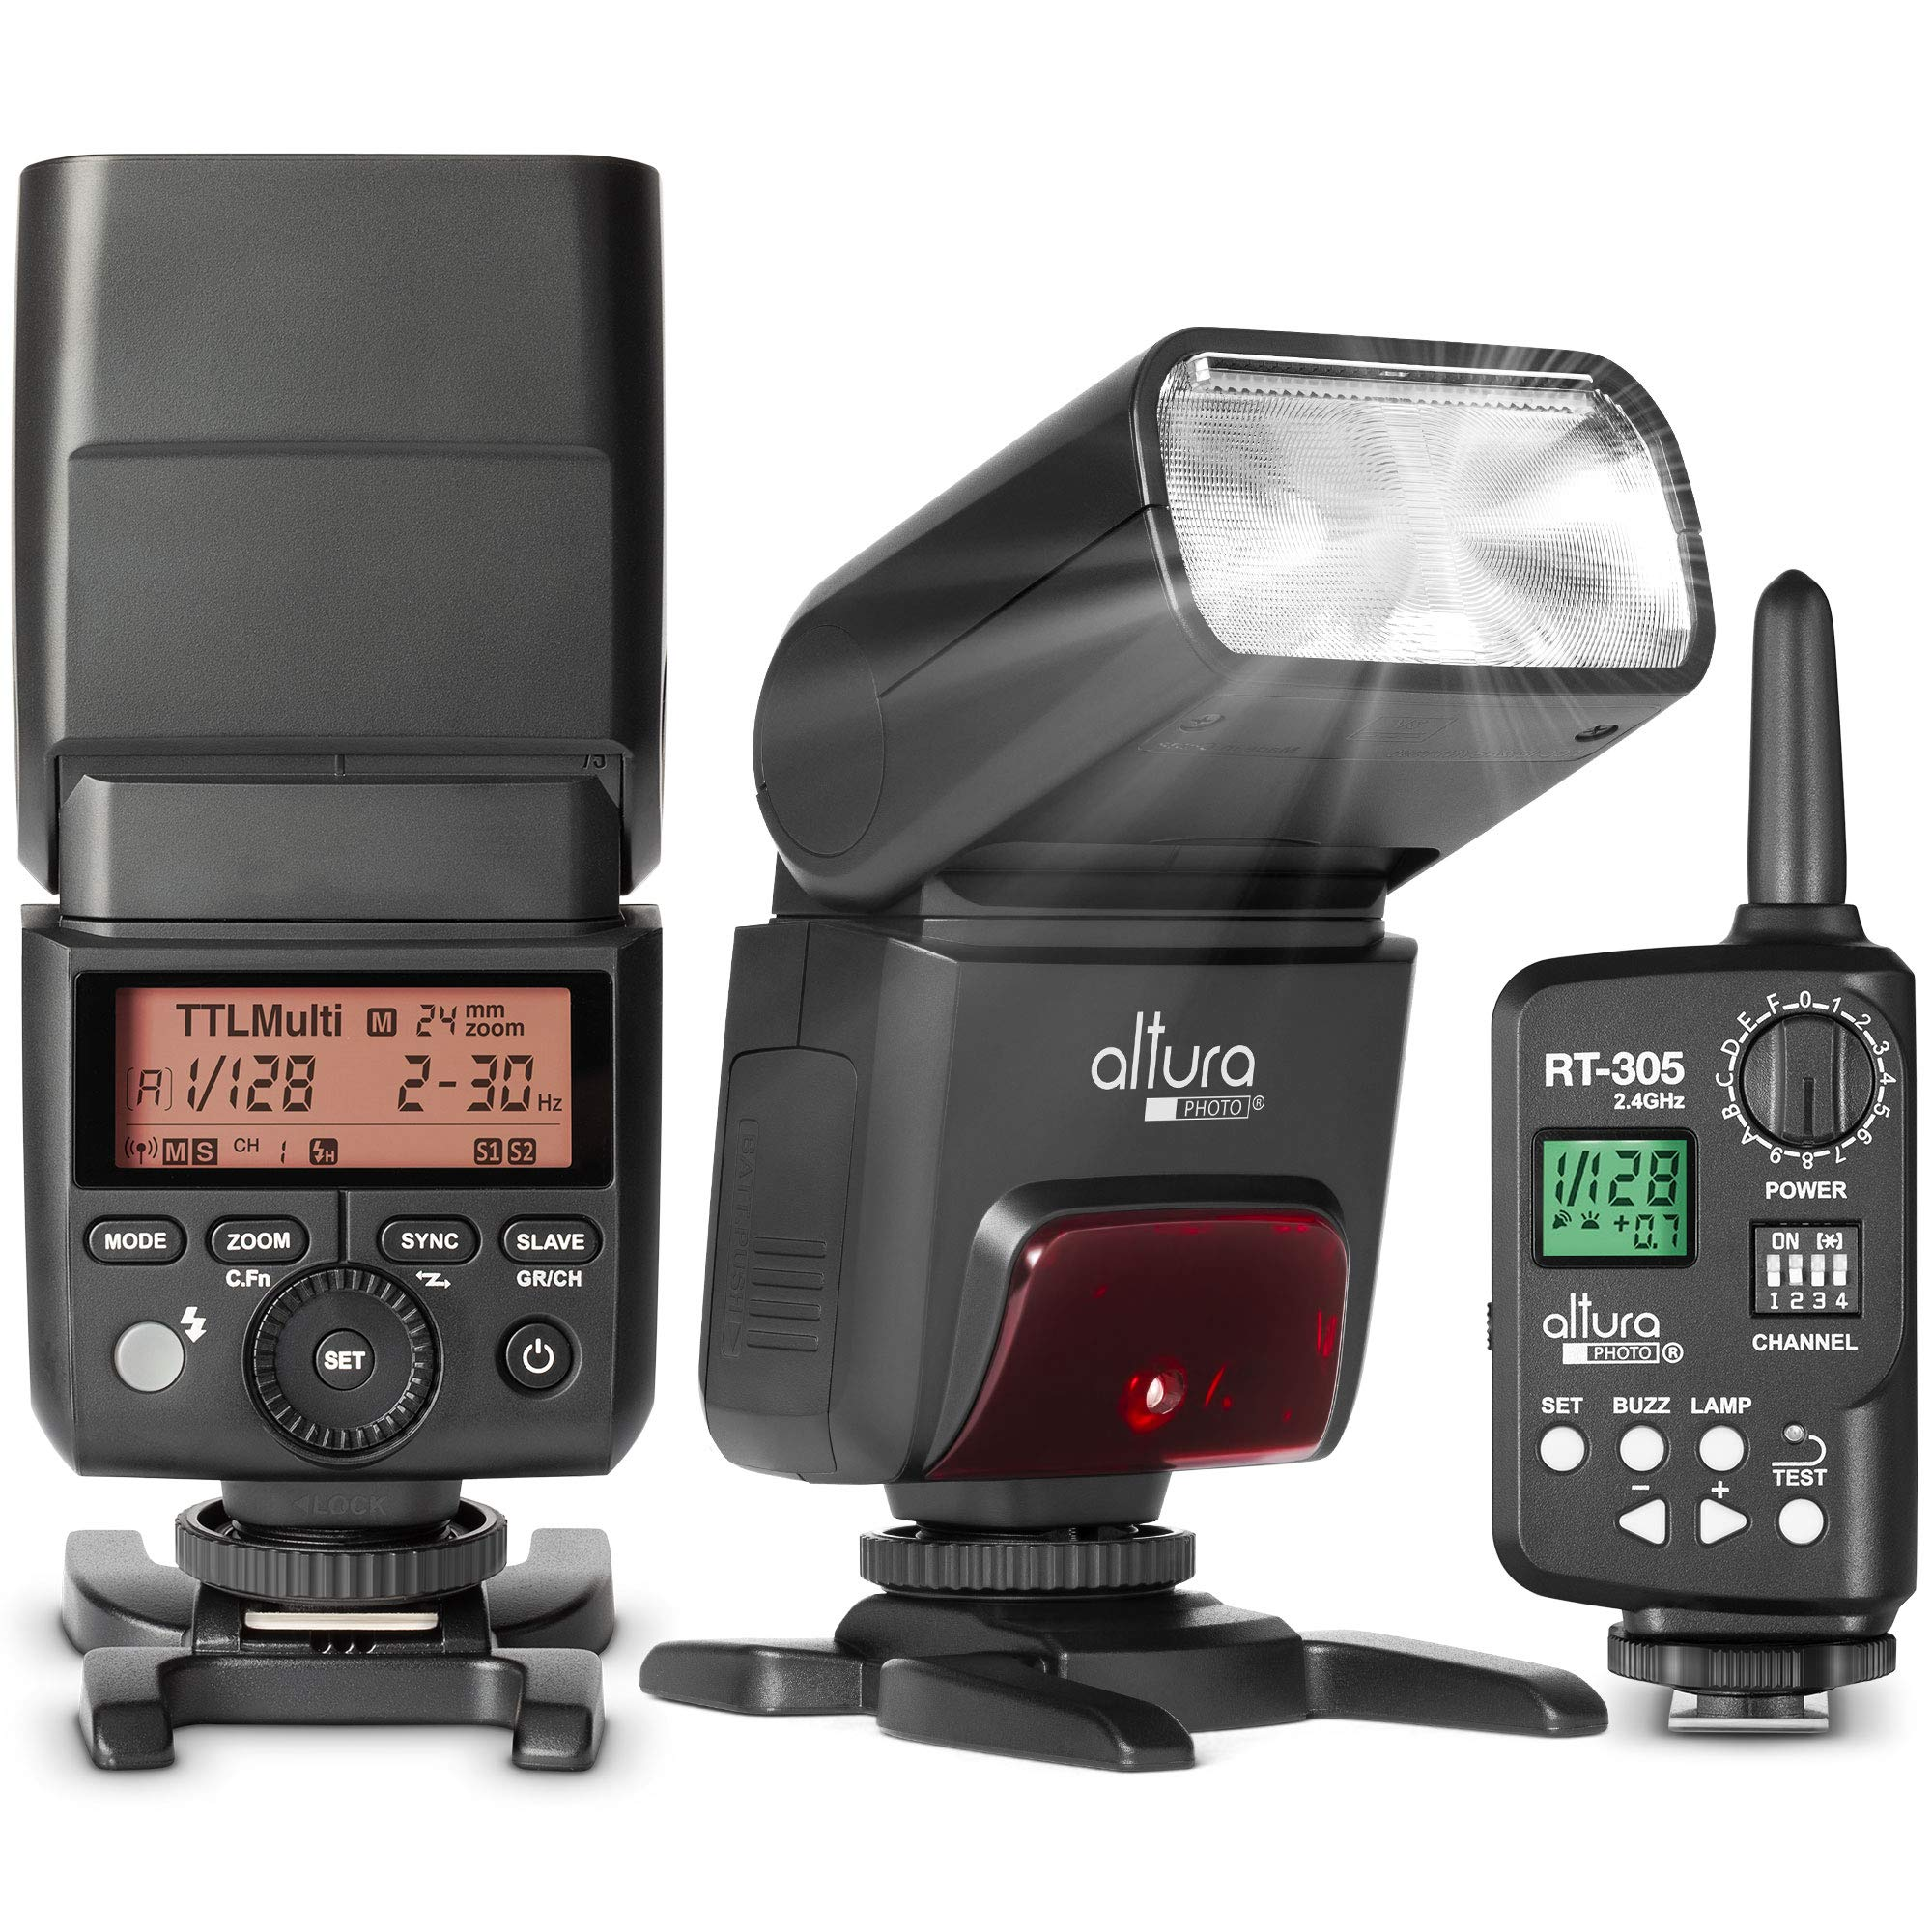 Camera Flash with Trigger for Canon by Altura Photo - AP-305C 2.4GHz E-TTL Speedlite for DSLR and Mirrorless by Altura Photo